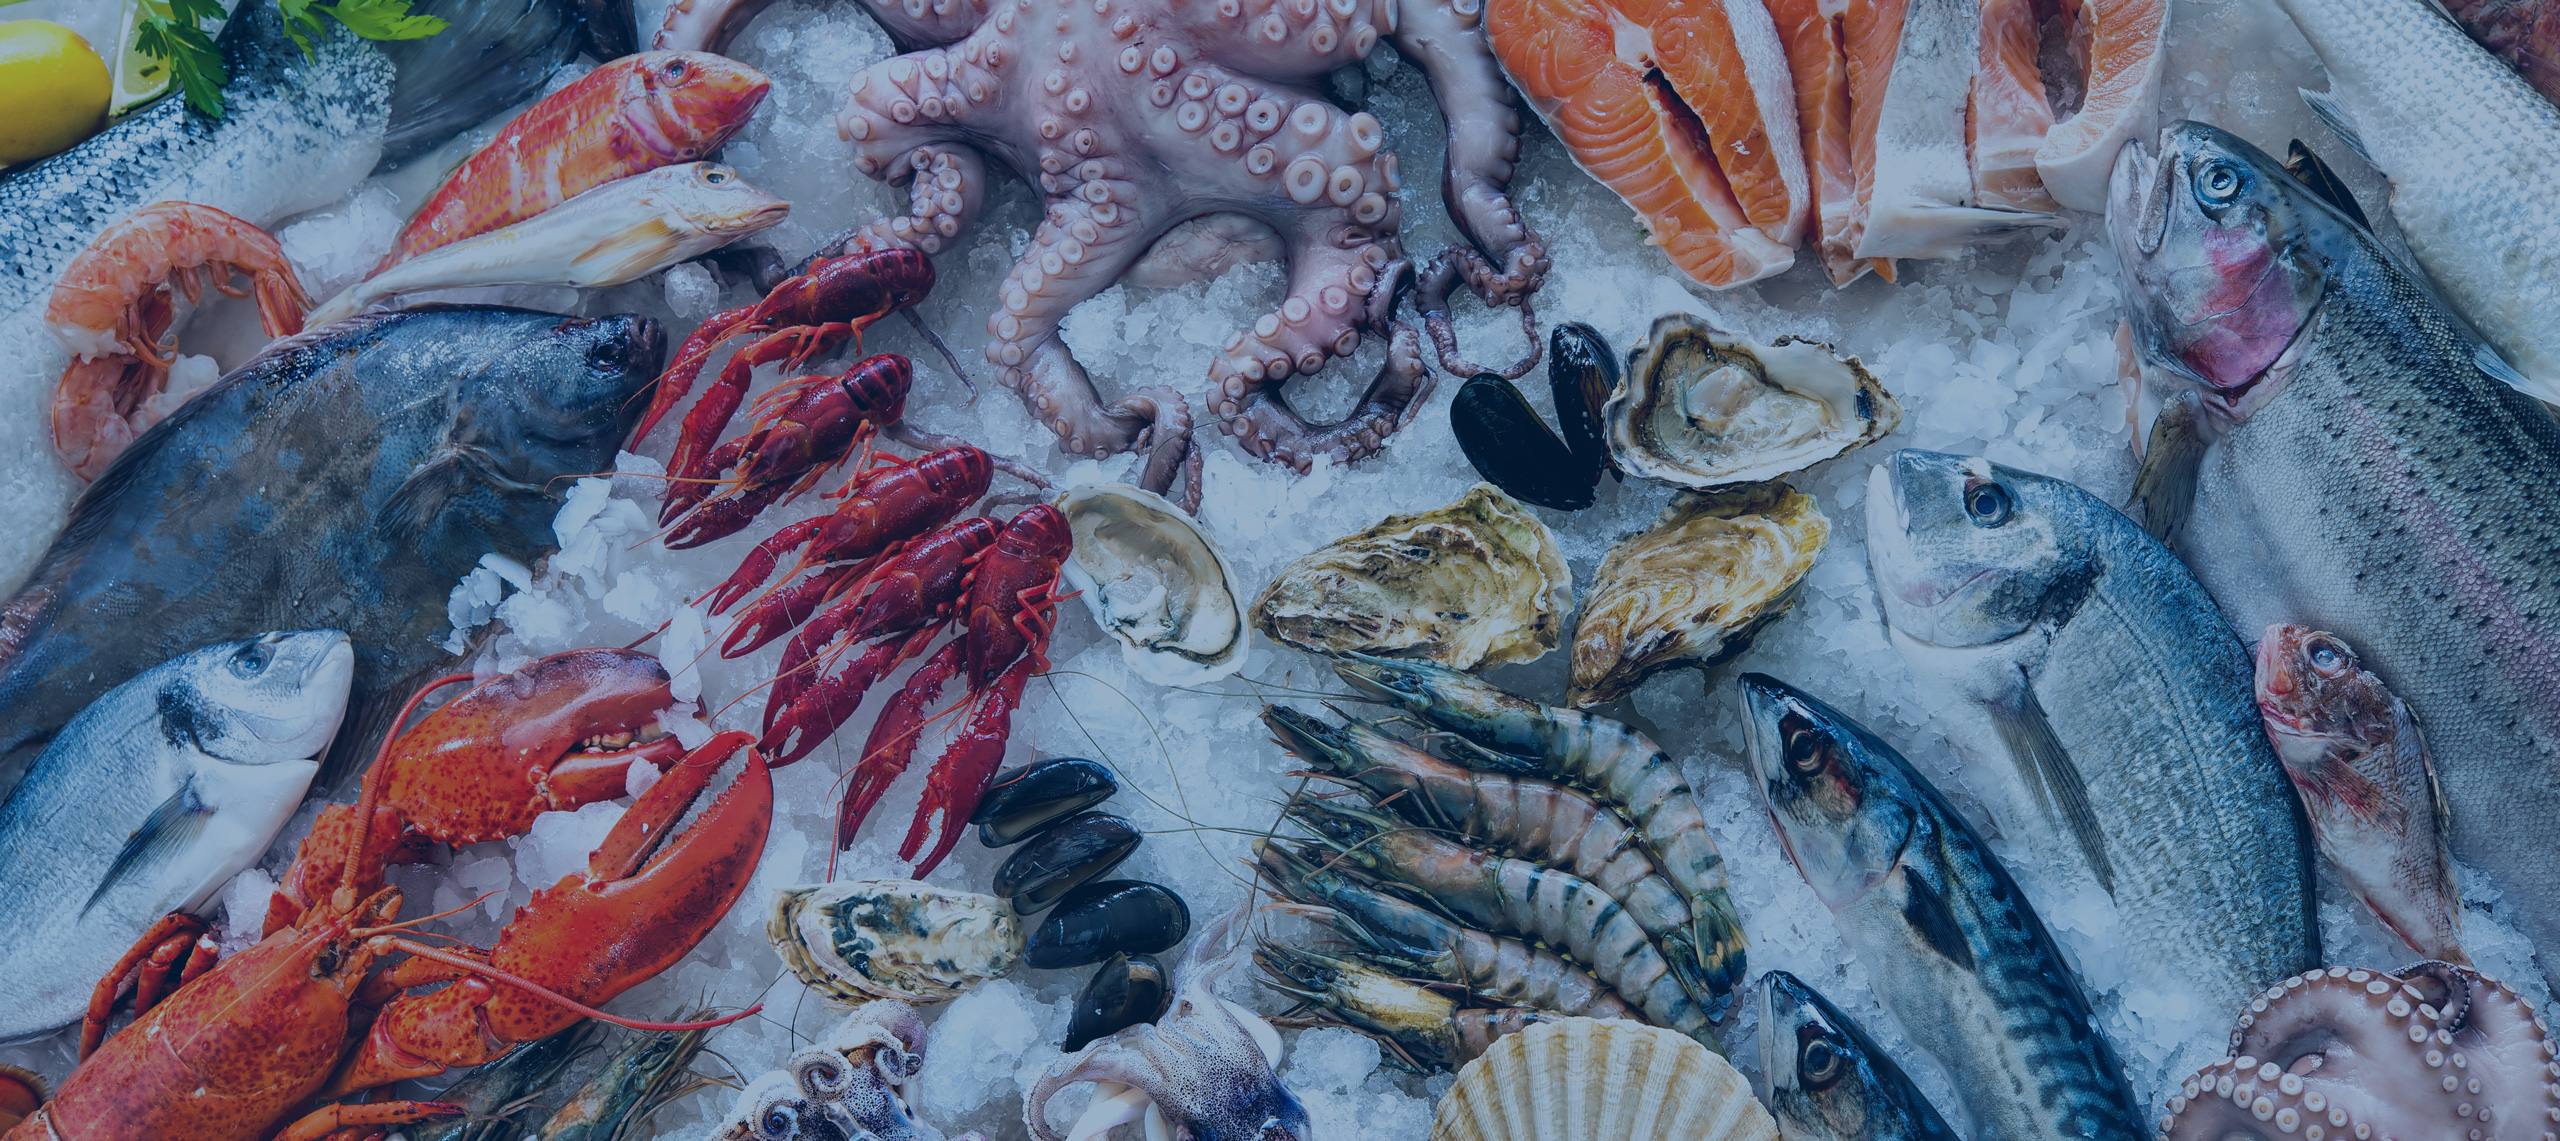 YOUR 5 BEST HOTELS TO STAY AT FOR SEAFOOD EXPO GLOBAL 2016